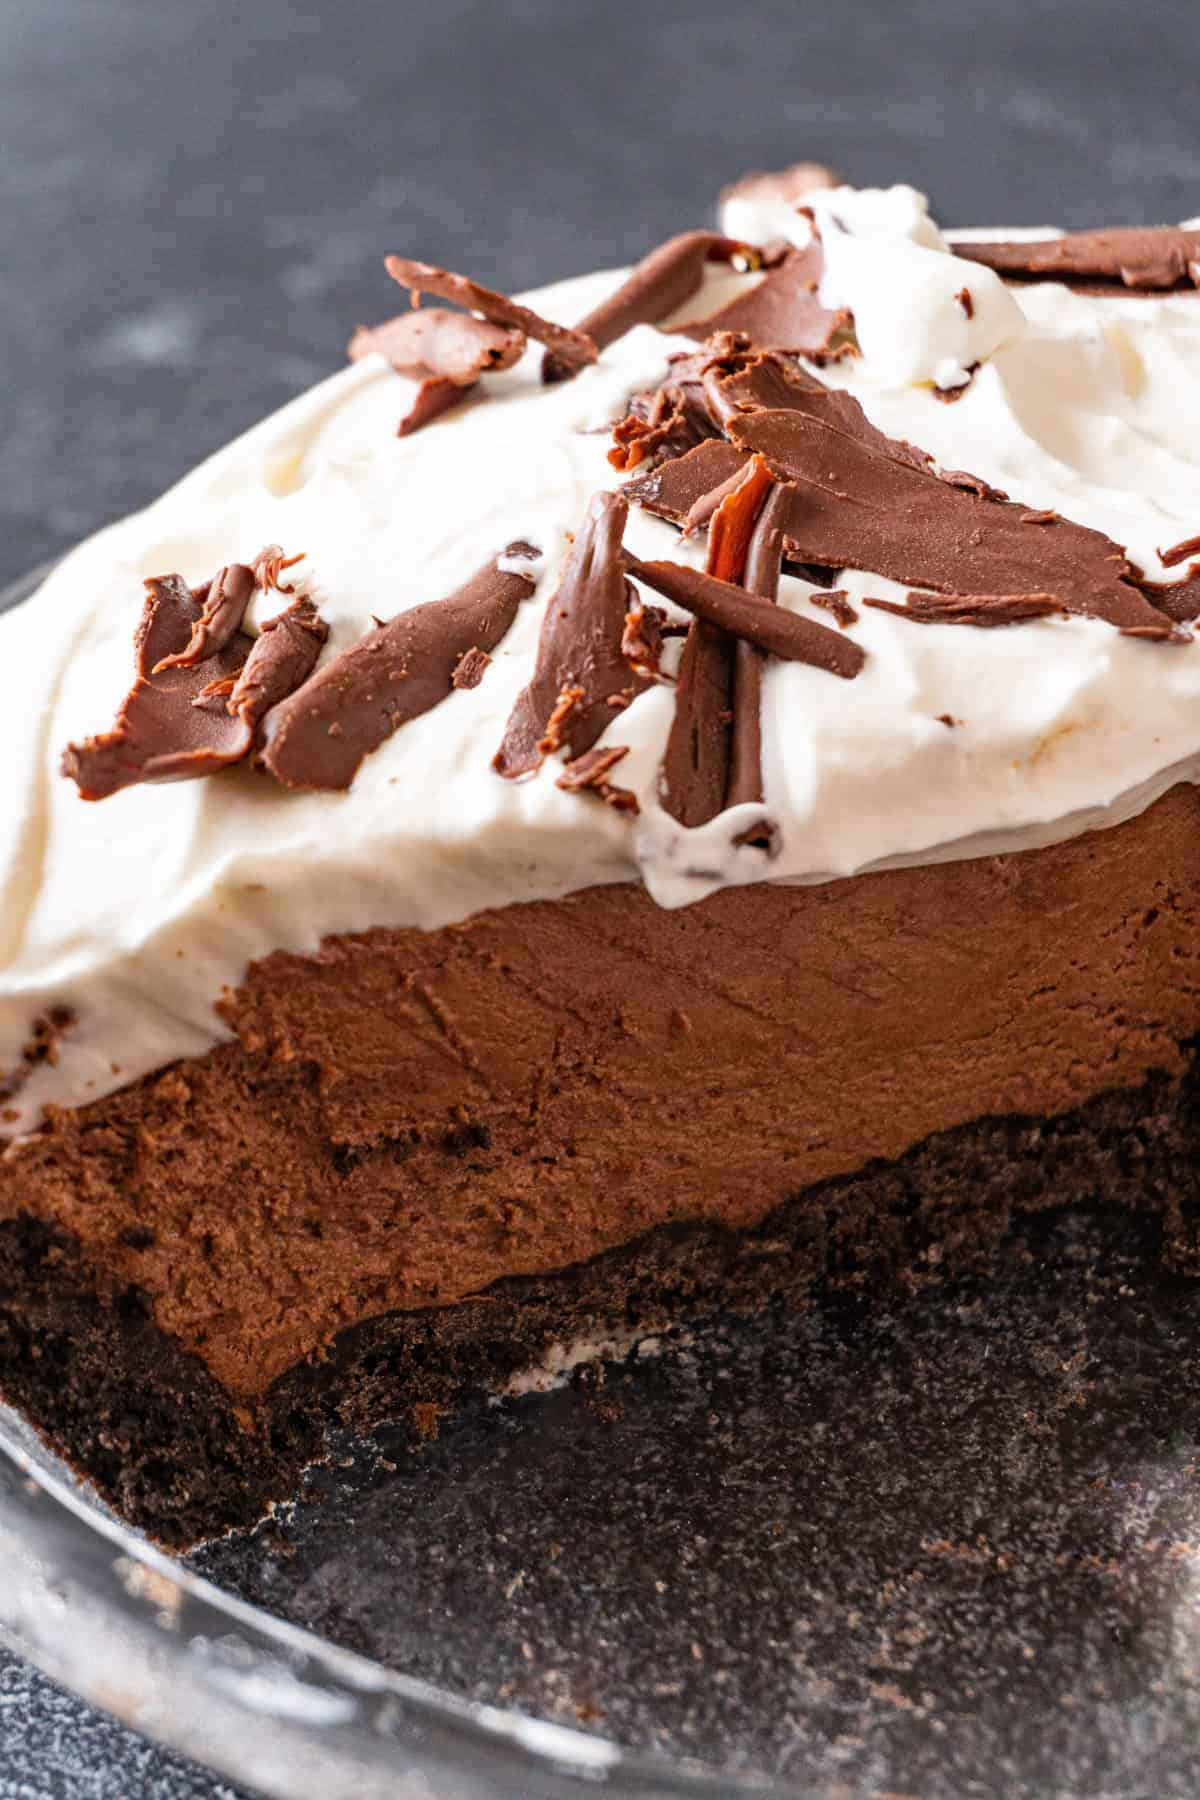 French Silk Chocolate Pie in pie dish